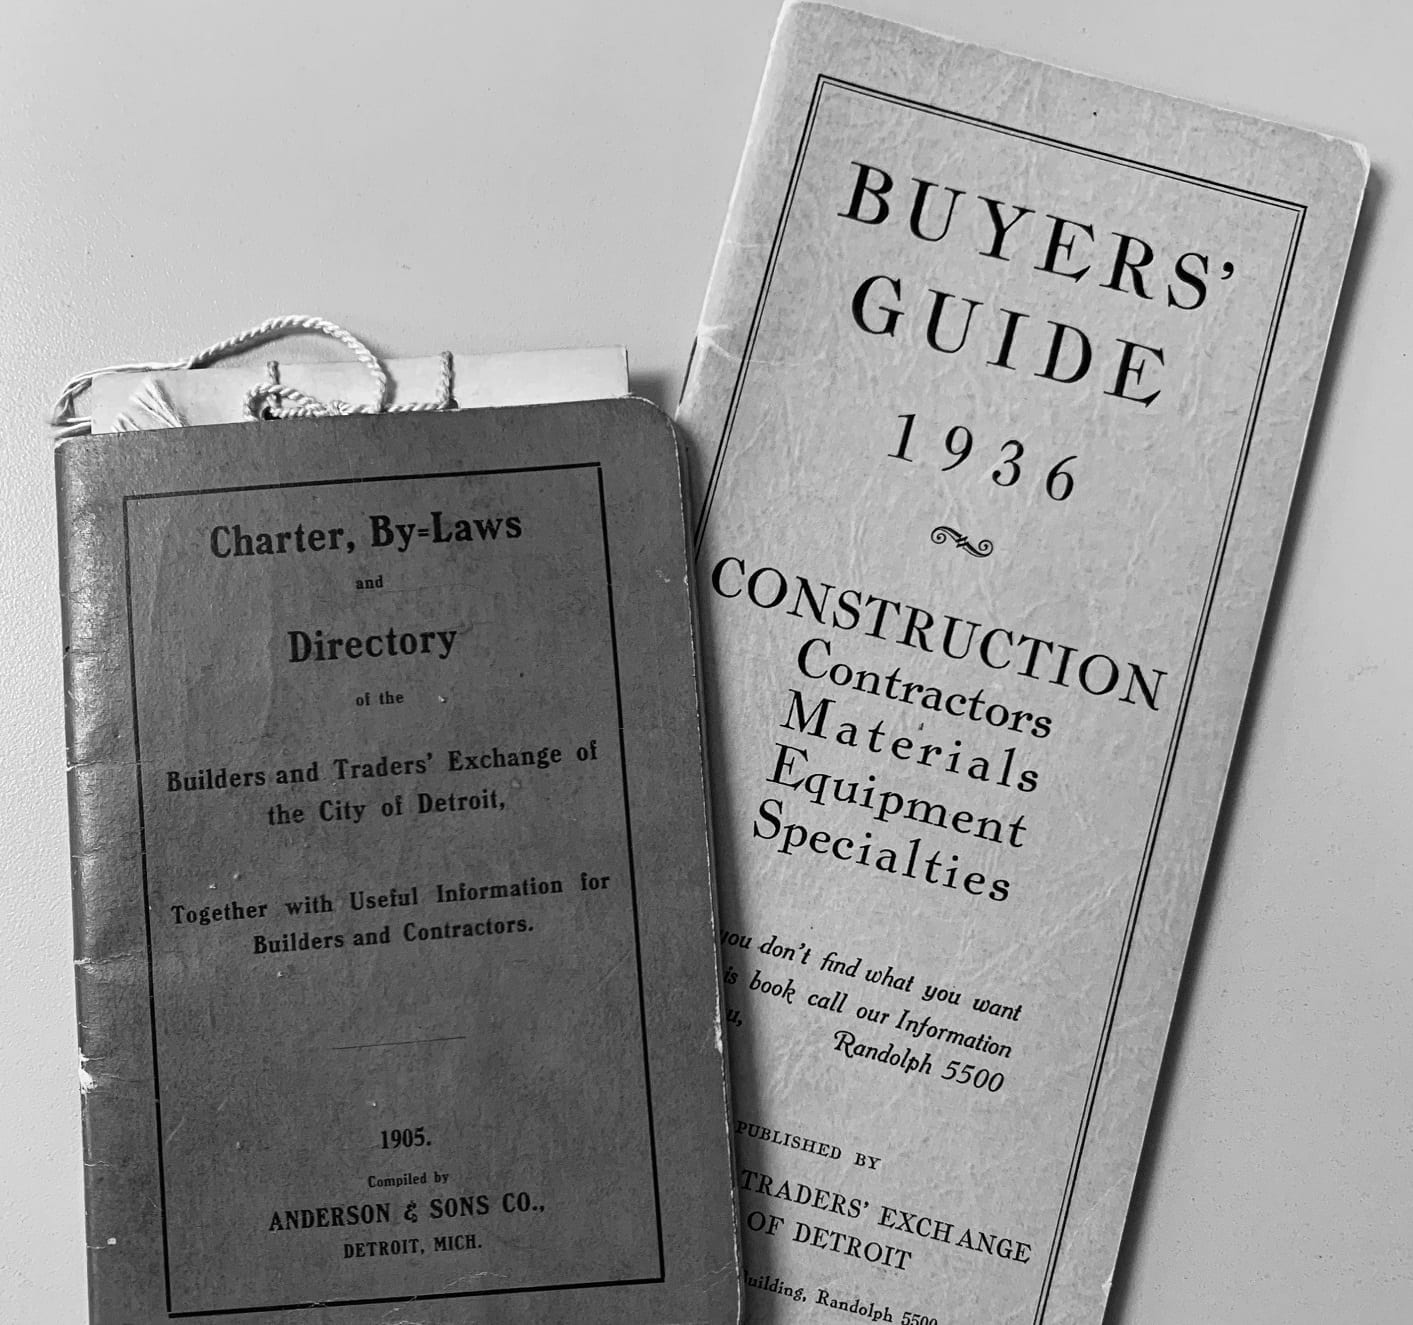 1936 Buyers Guide for web